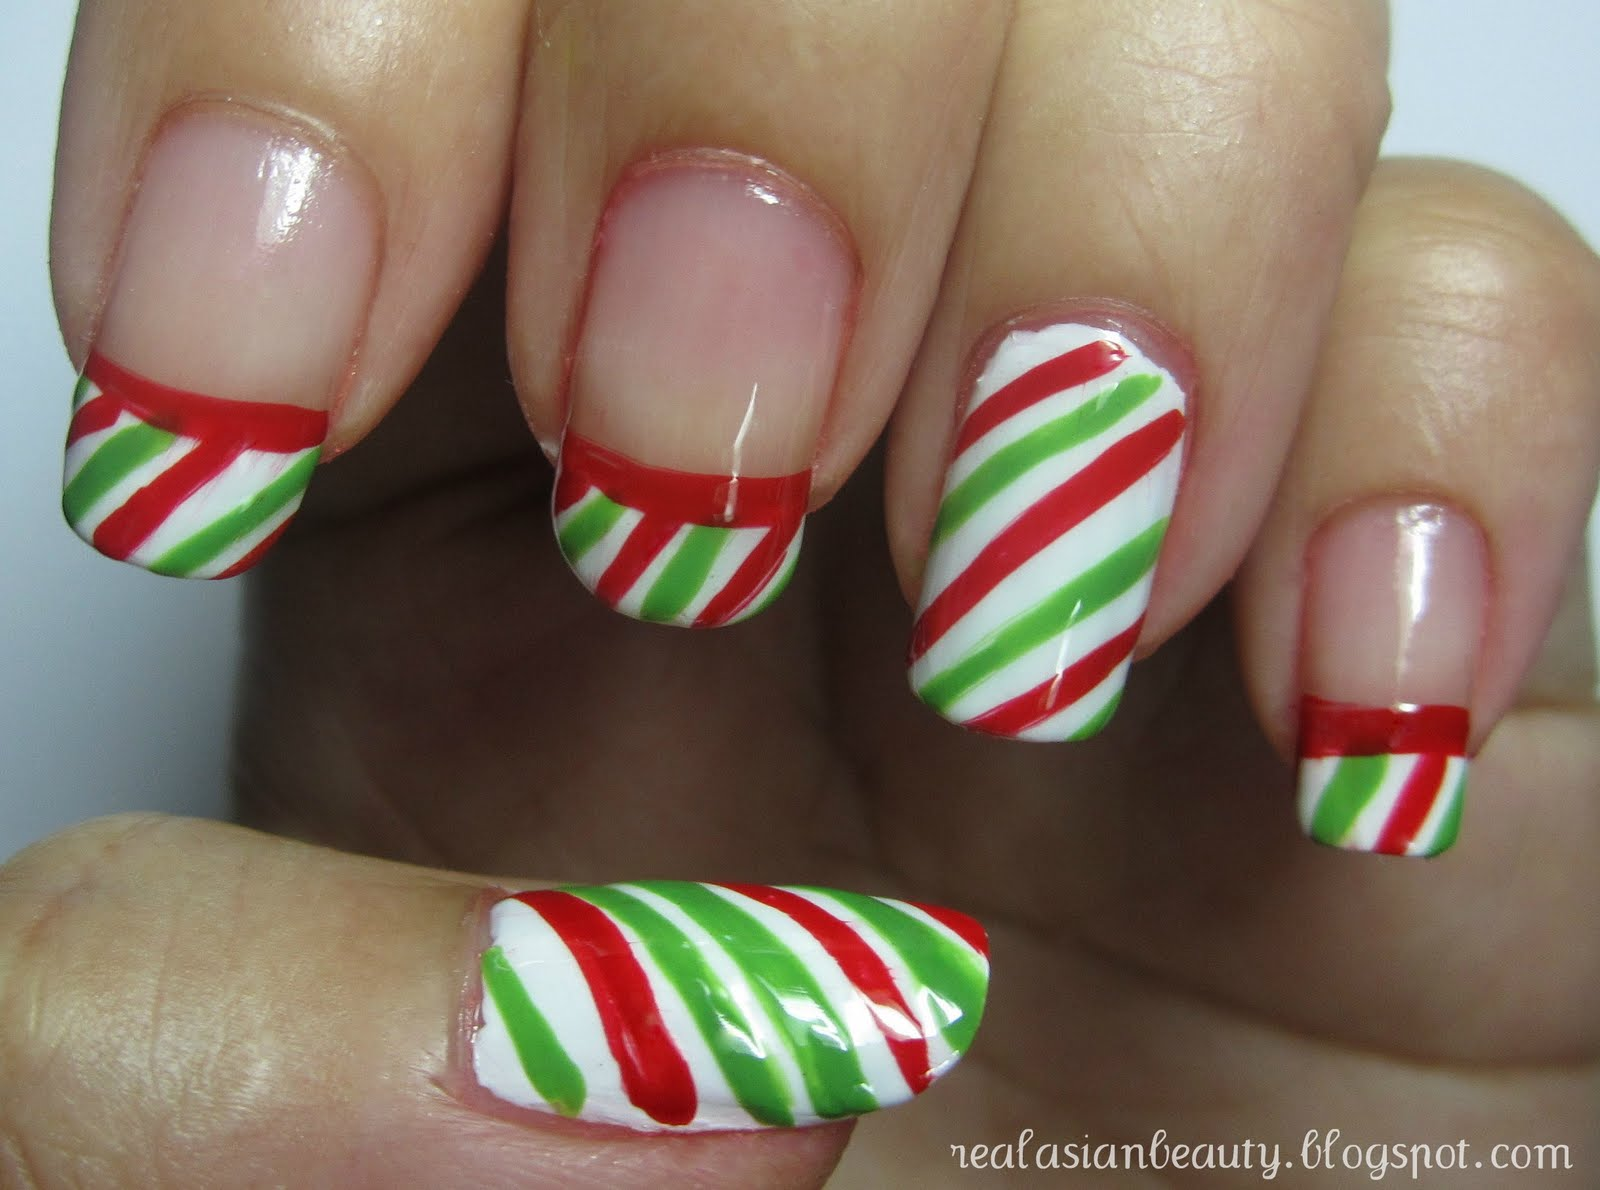 Real Asian Beauty Candy Cane Nail Art Tutorial